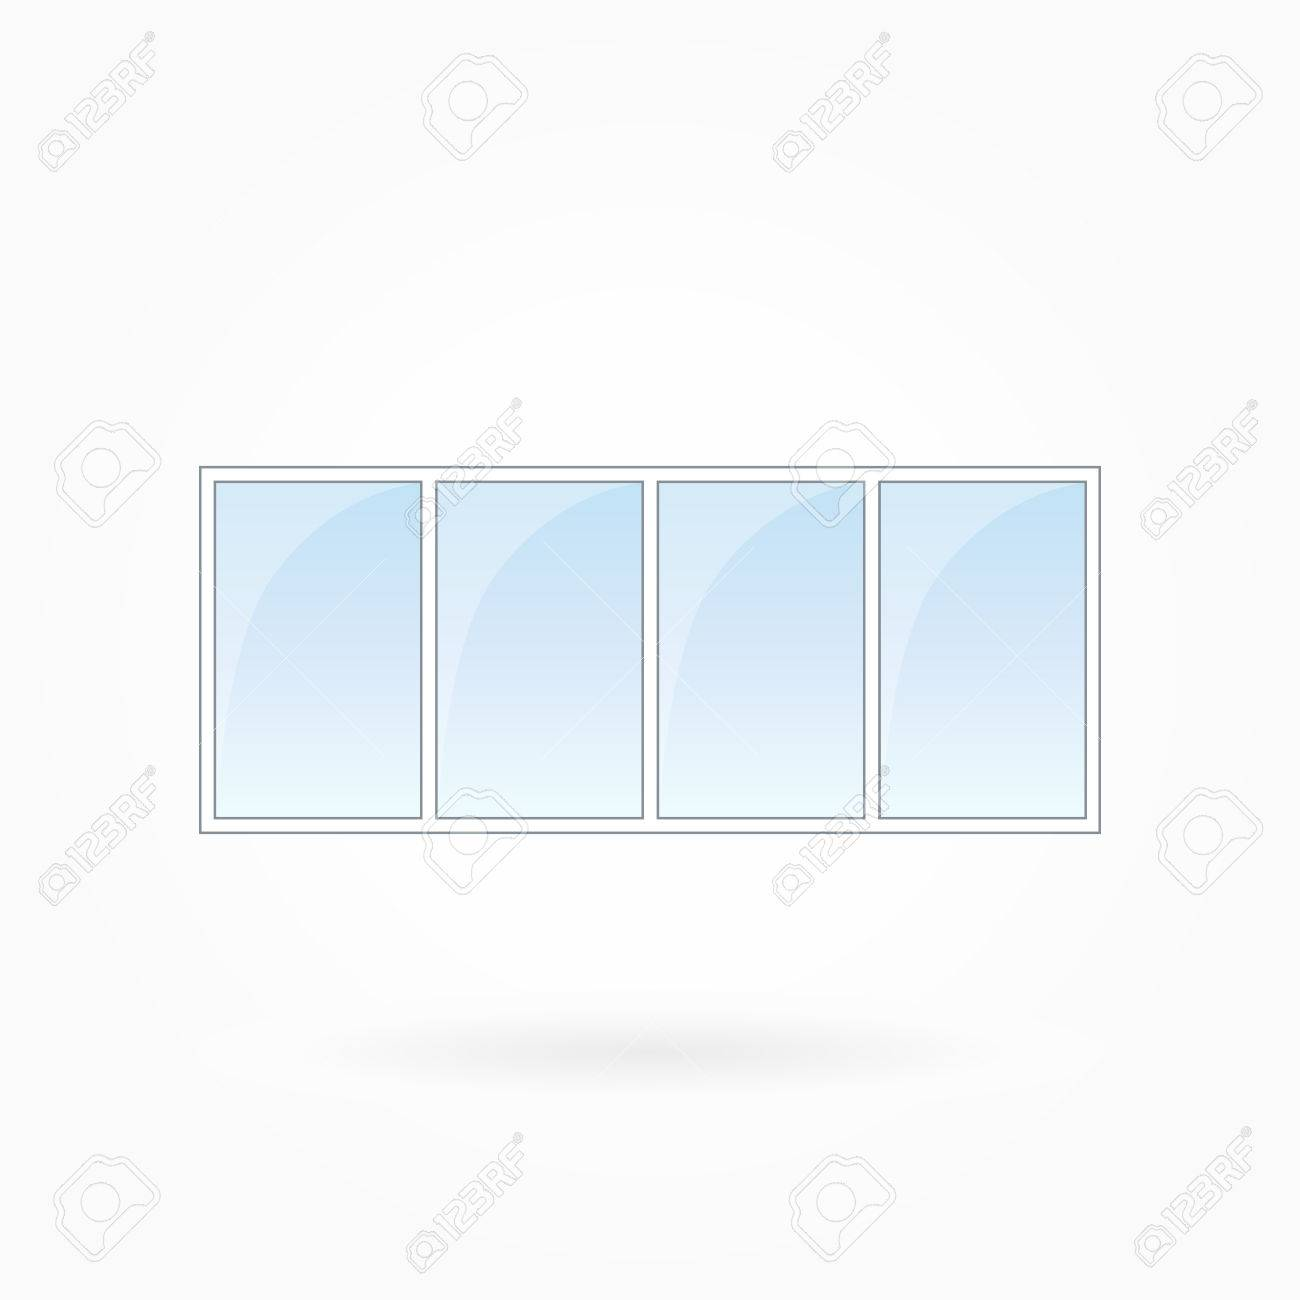 Window Frame Vector Illustration, Quadruple Closed Modern Windows ...